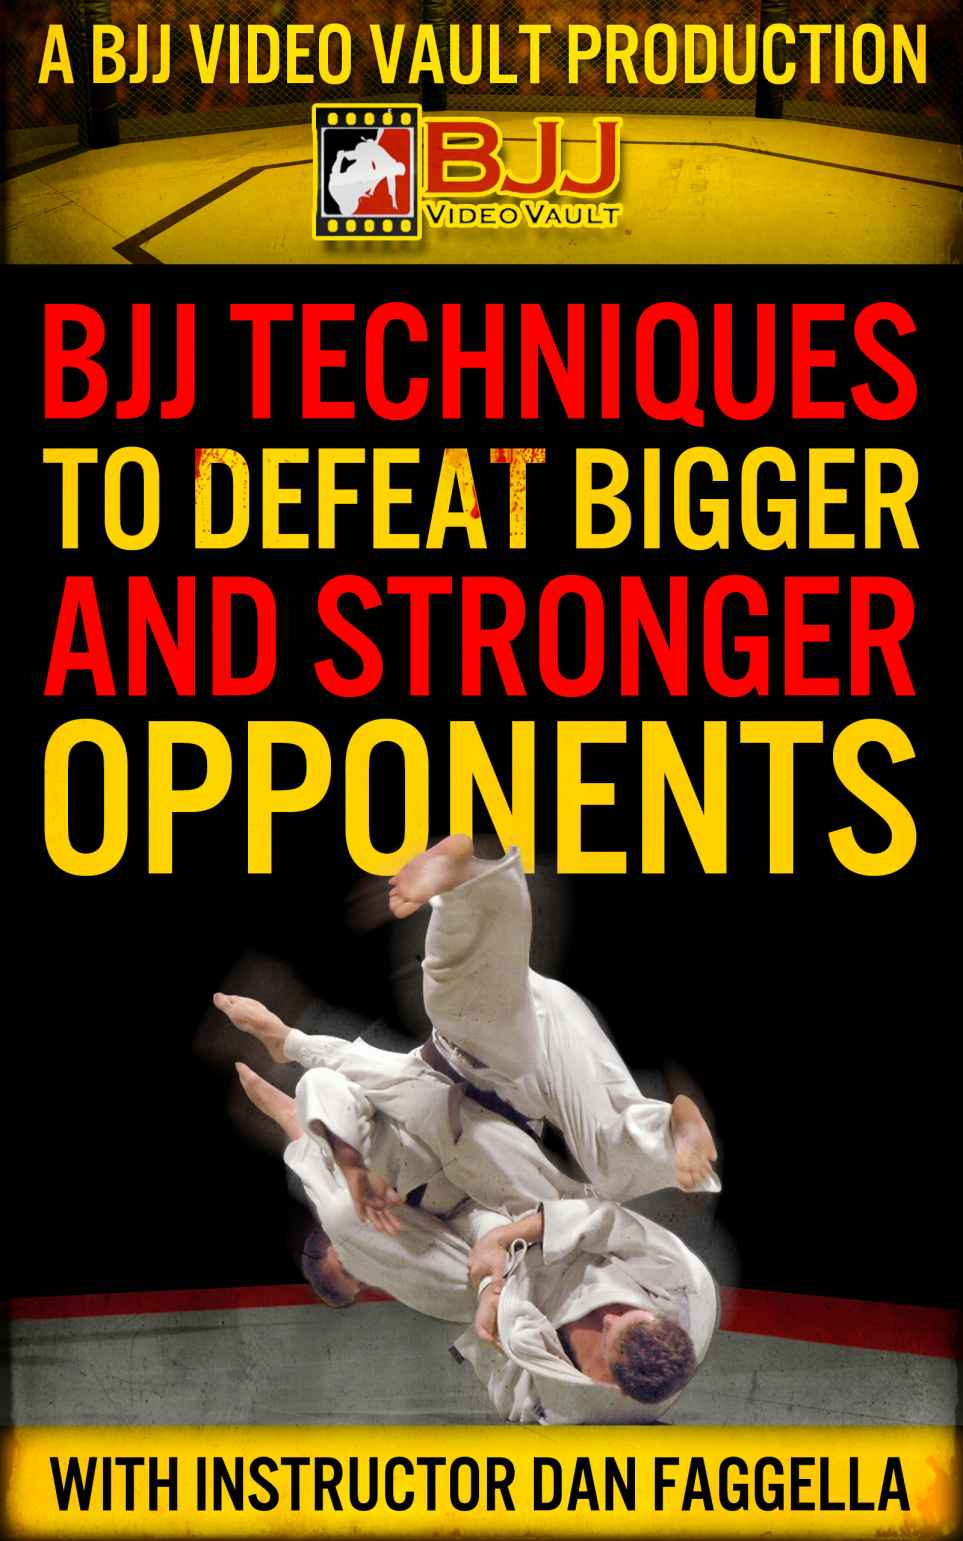 Book Review: BJJ Techniques to Defeat Bigger, Stronger Opponents by Dan Faggella